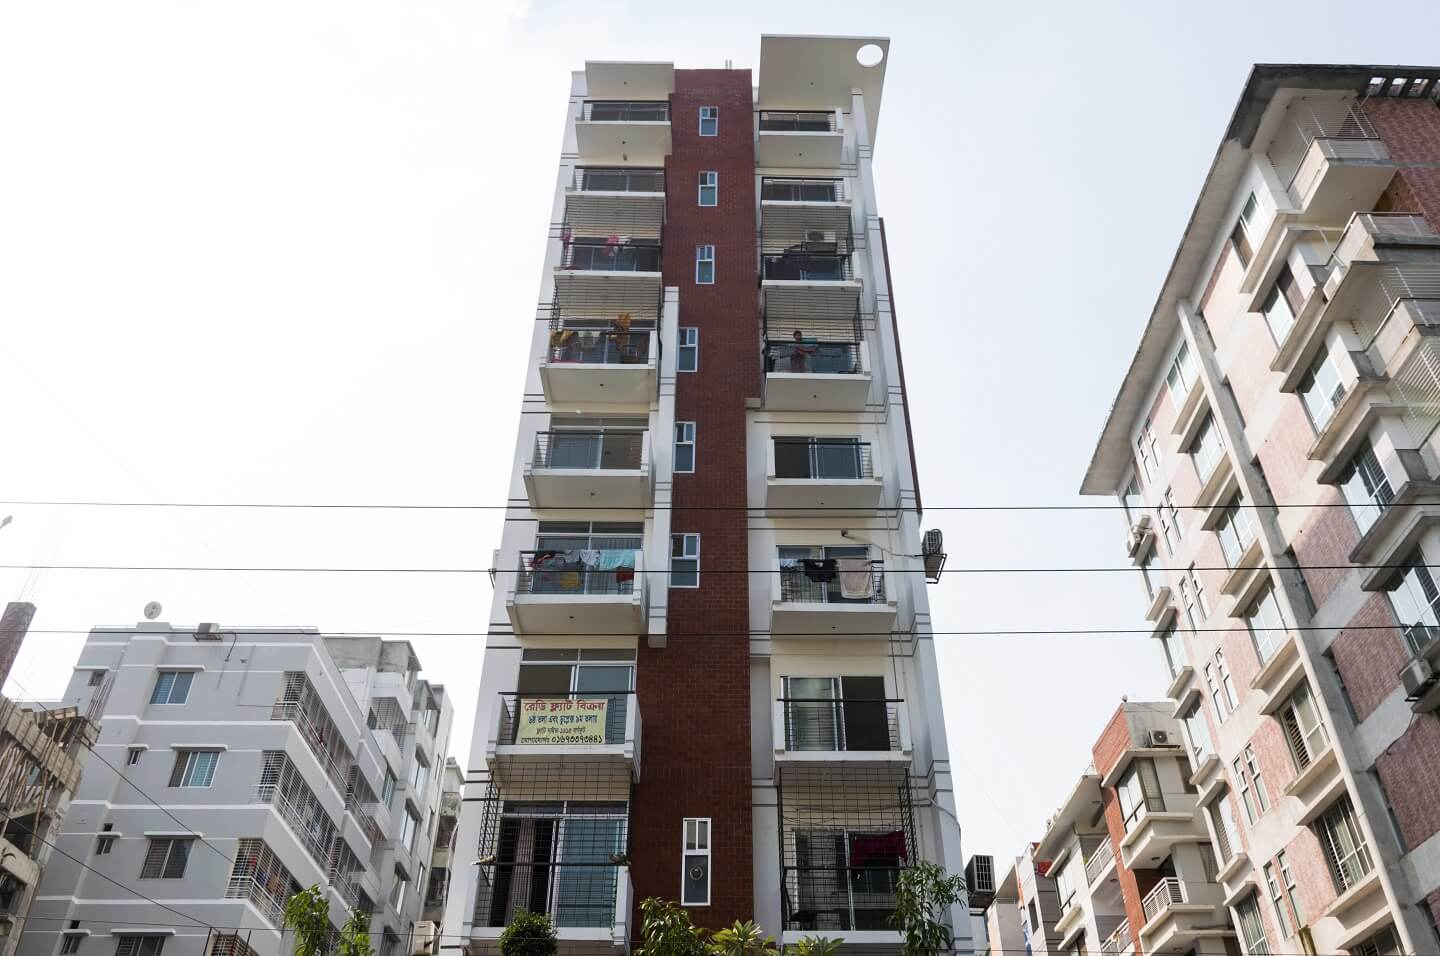 Our pick for properties of the month features another Bashundhara apartment at block F